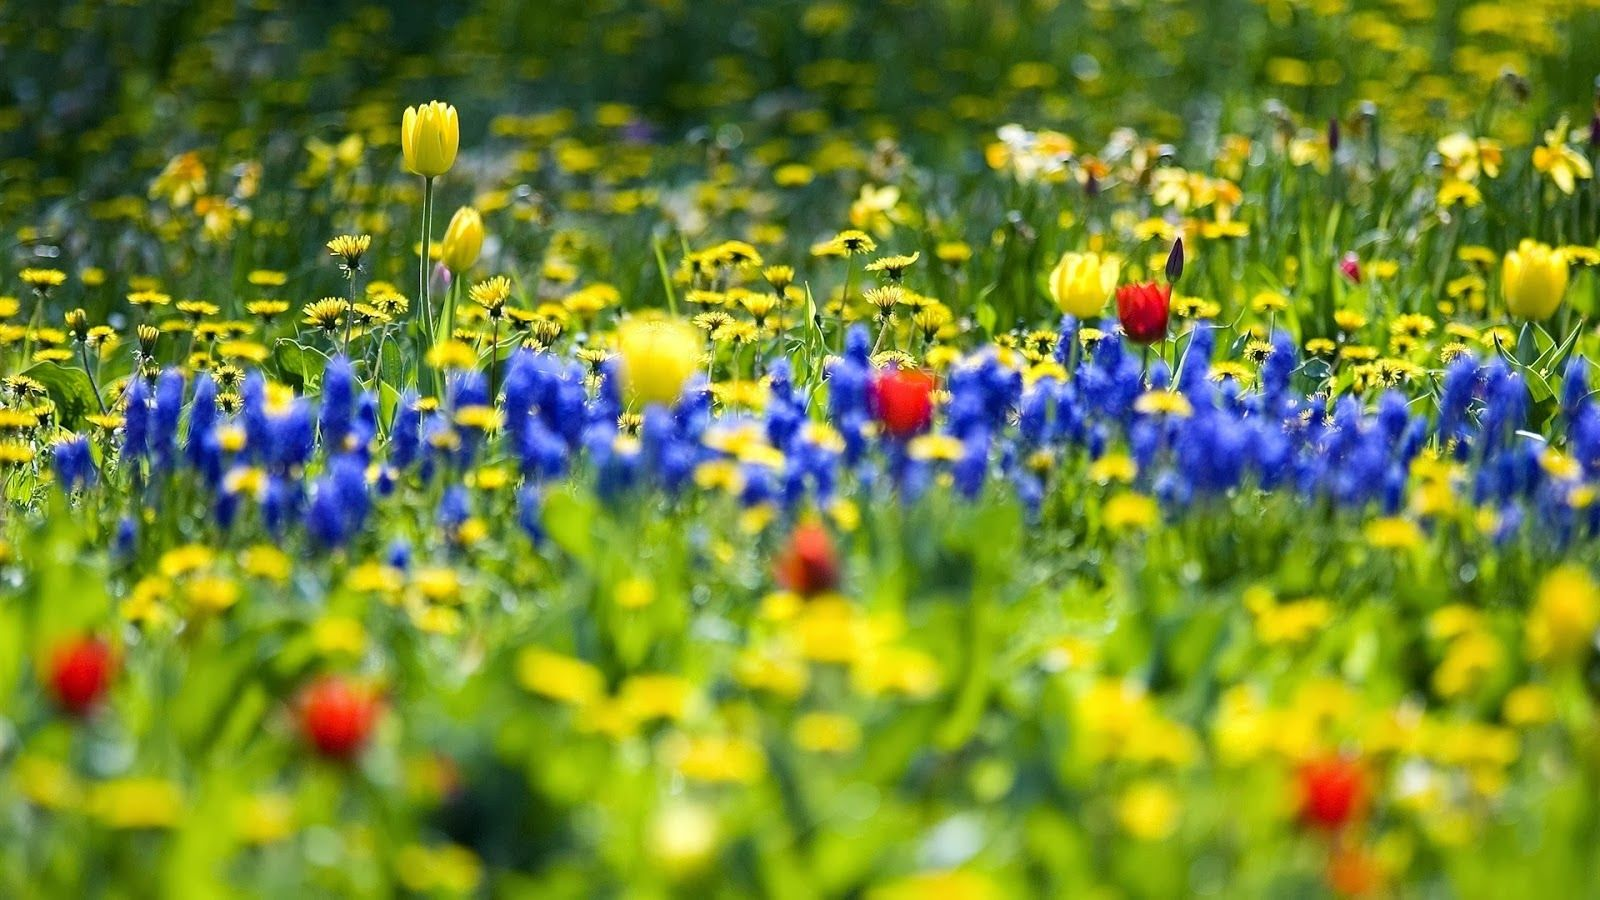 Top Hd Nature Scene Wallpapers Soft Wallpapers Seed Bombs Spring Wallpaper Spring Wildflowers